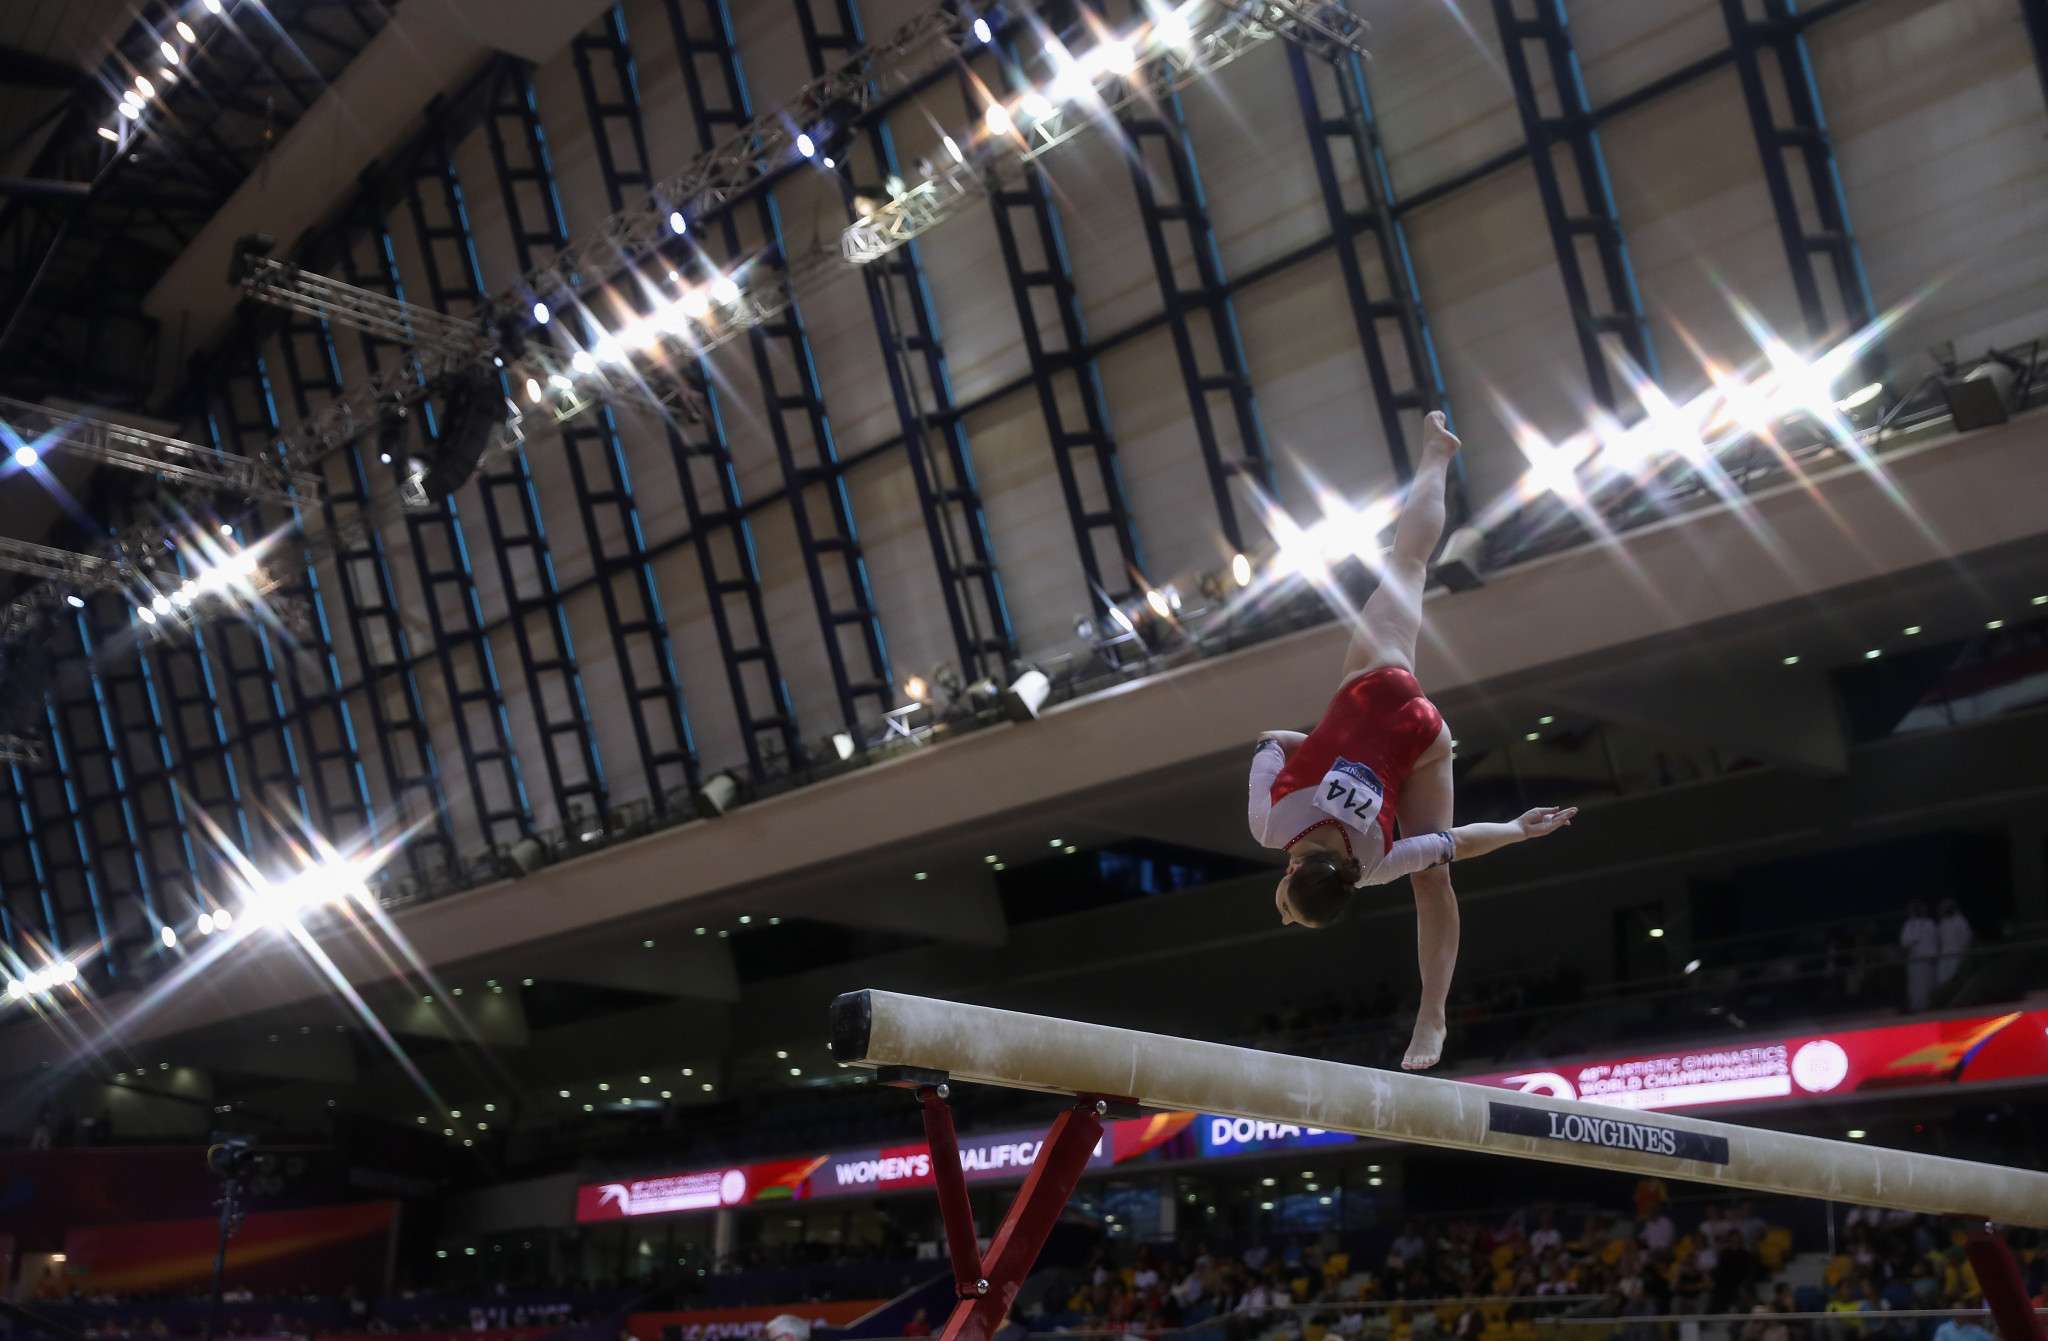 Russia and China unable to overhaul United States in women's team qualification at World Artistic Gymnastics Championships